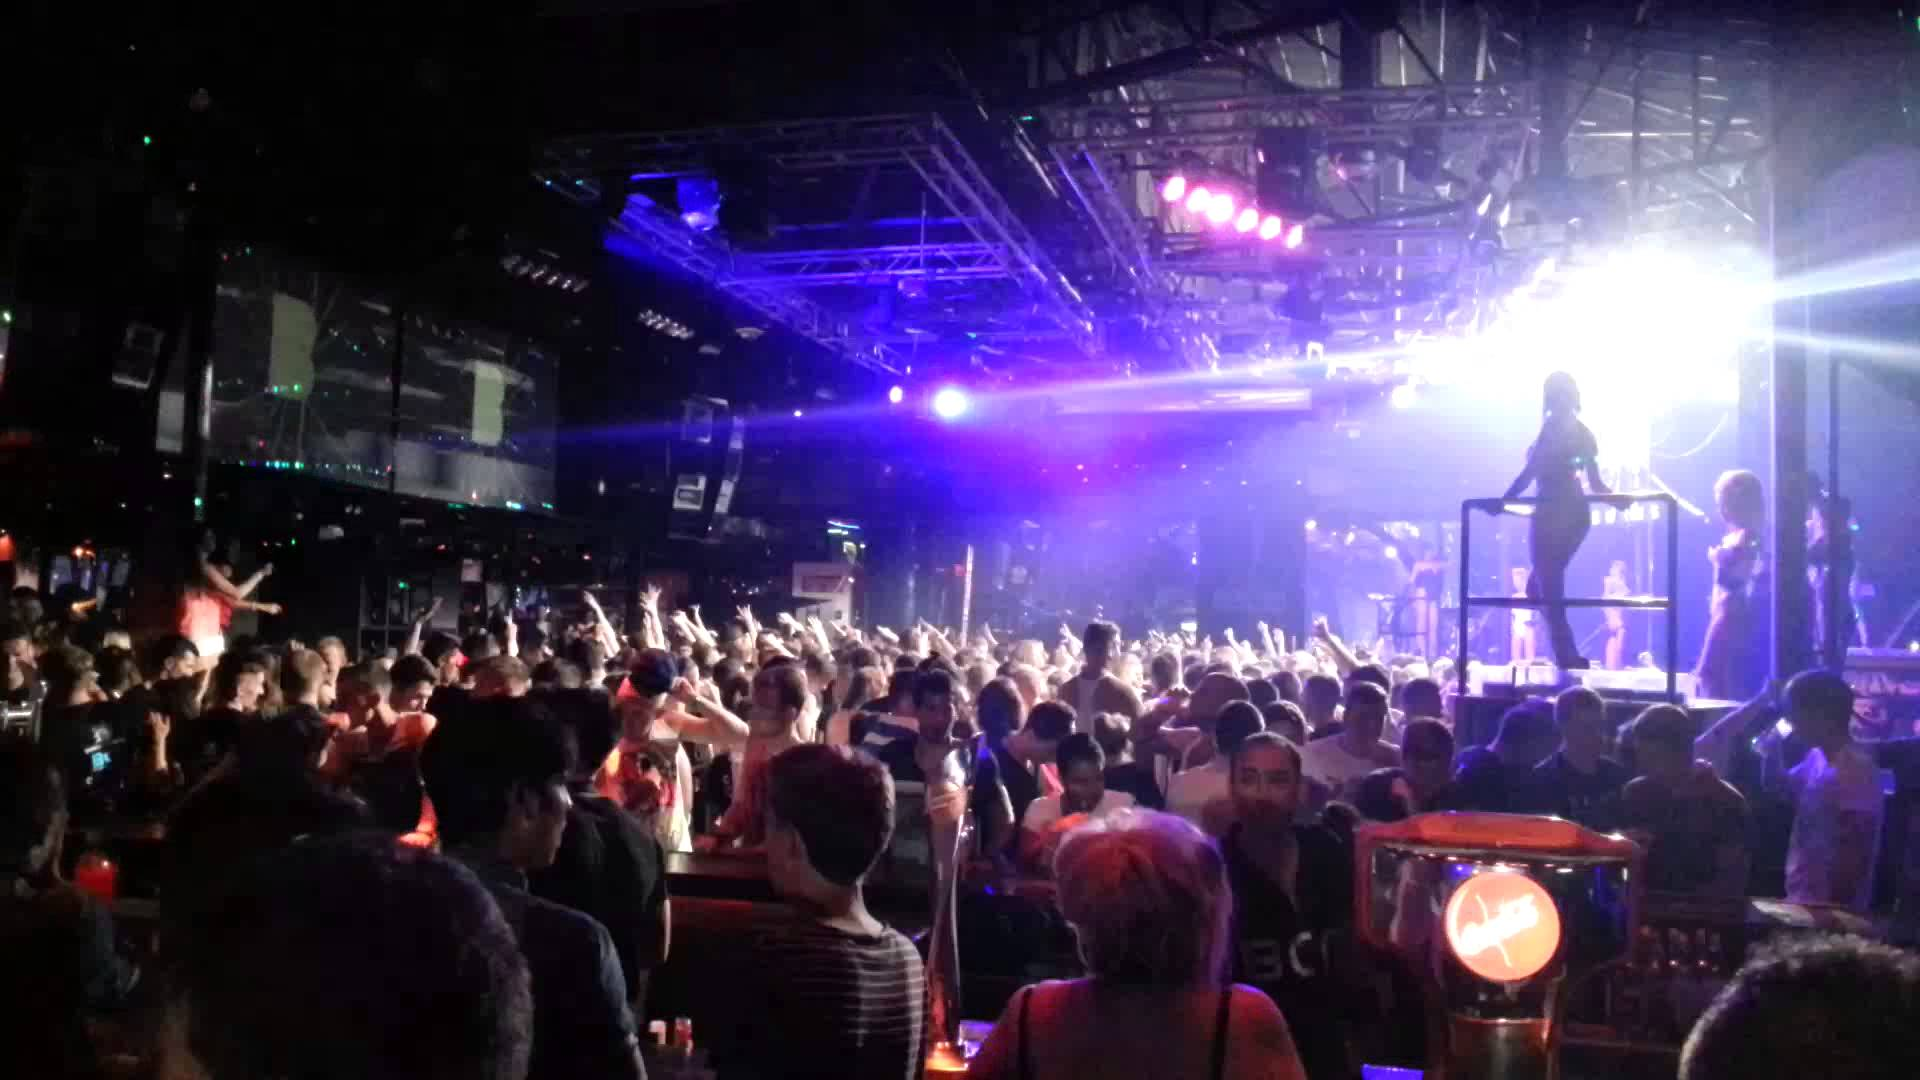 bcm nightclub magaluf club 1